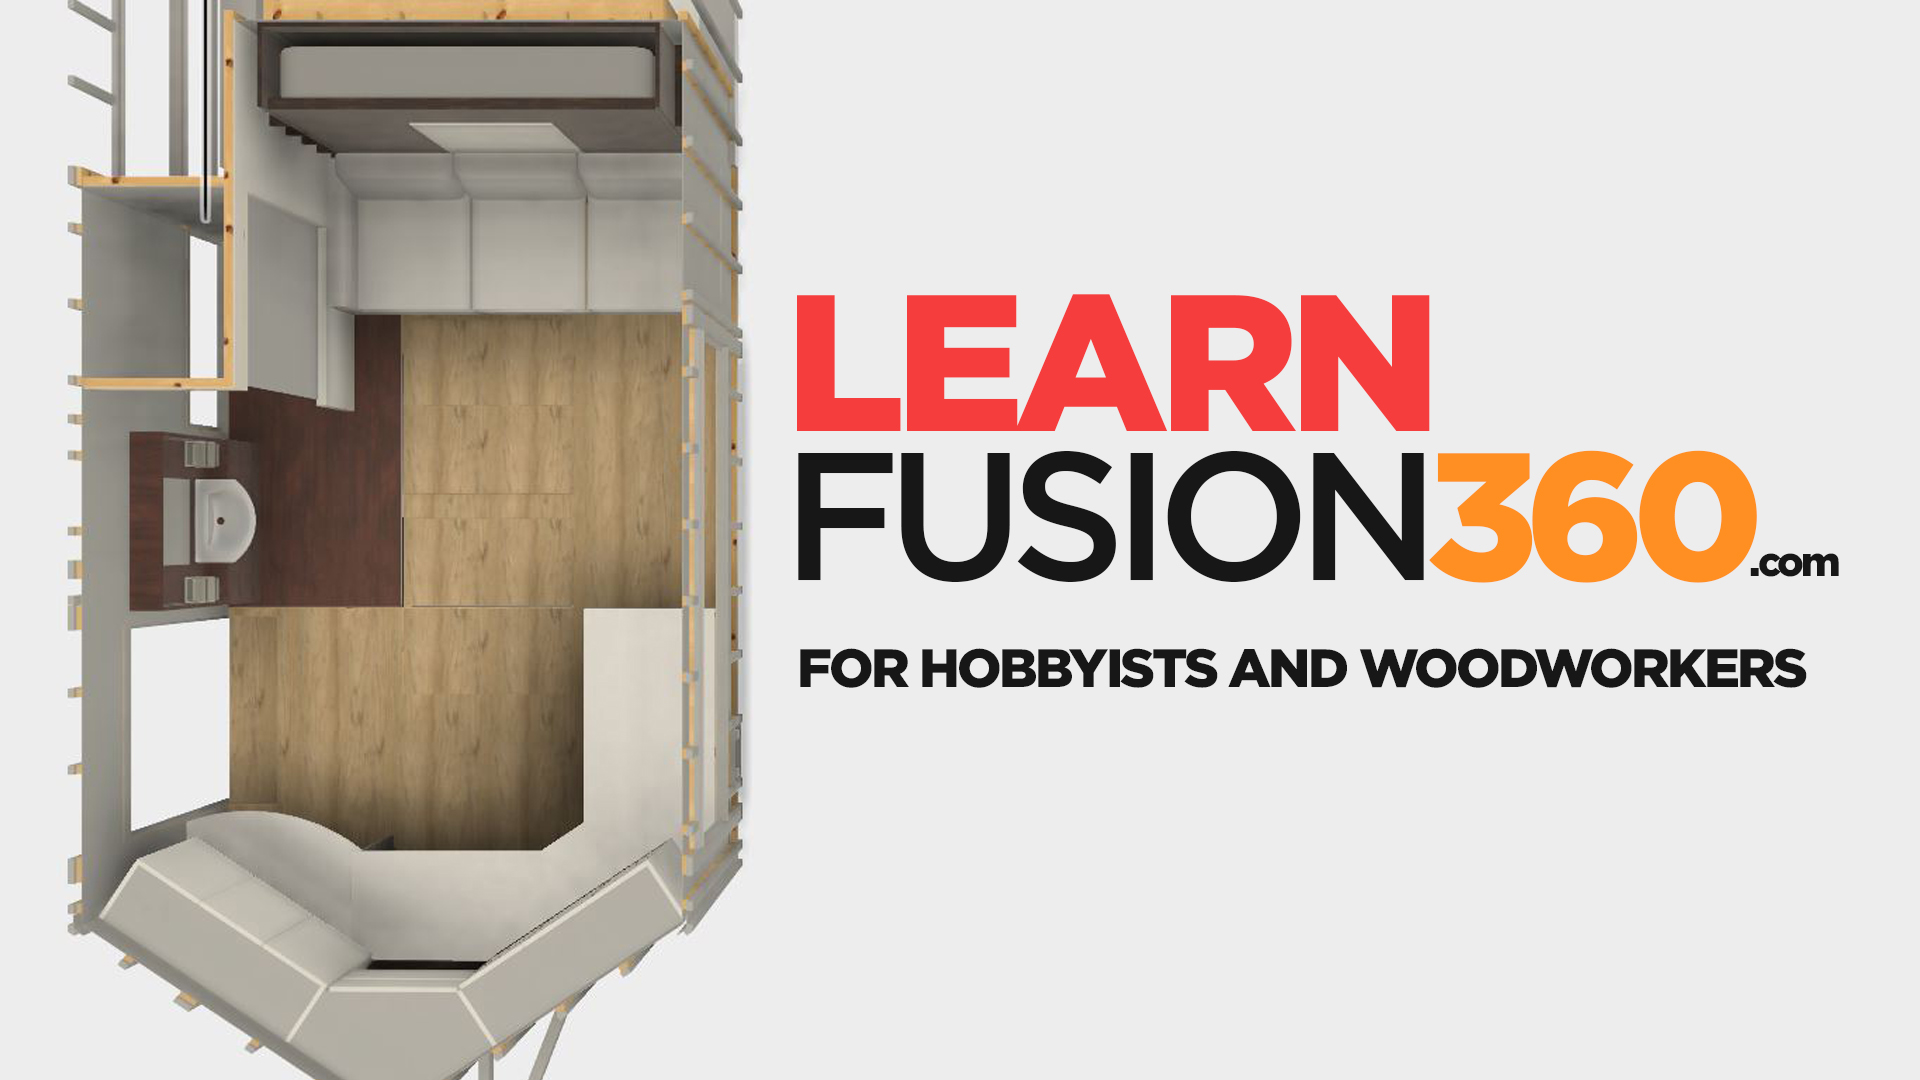 Learn Fusion 360 For Hobbyists and Woodworkers